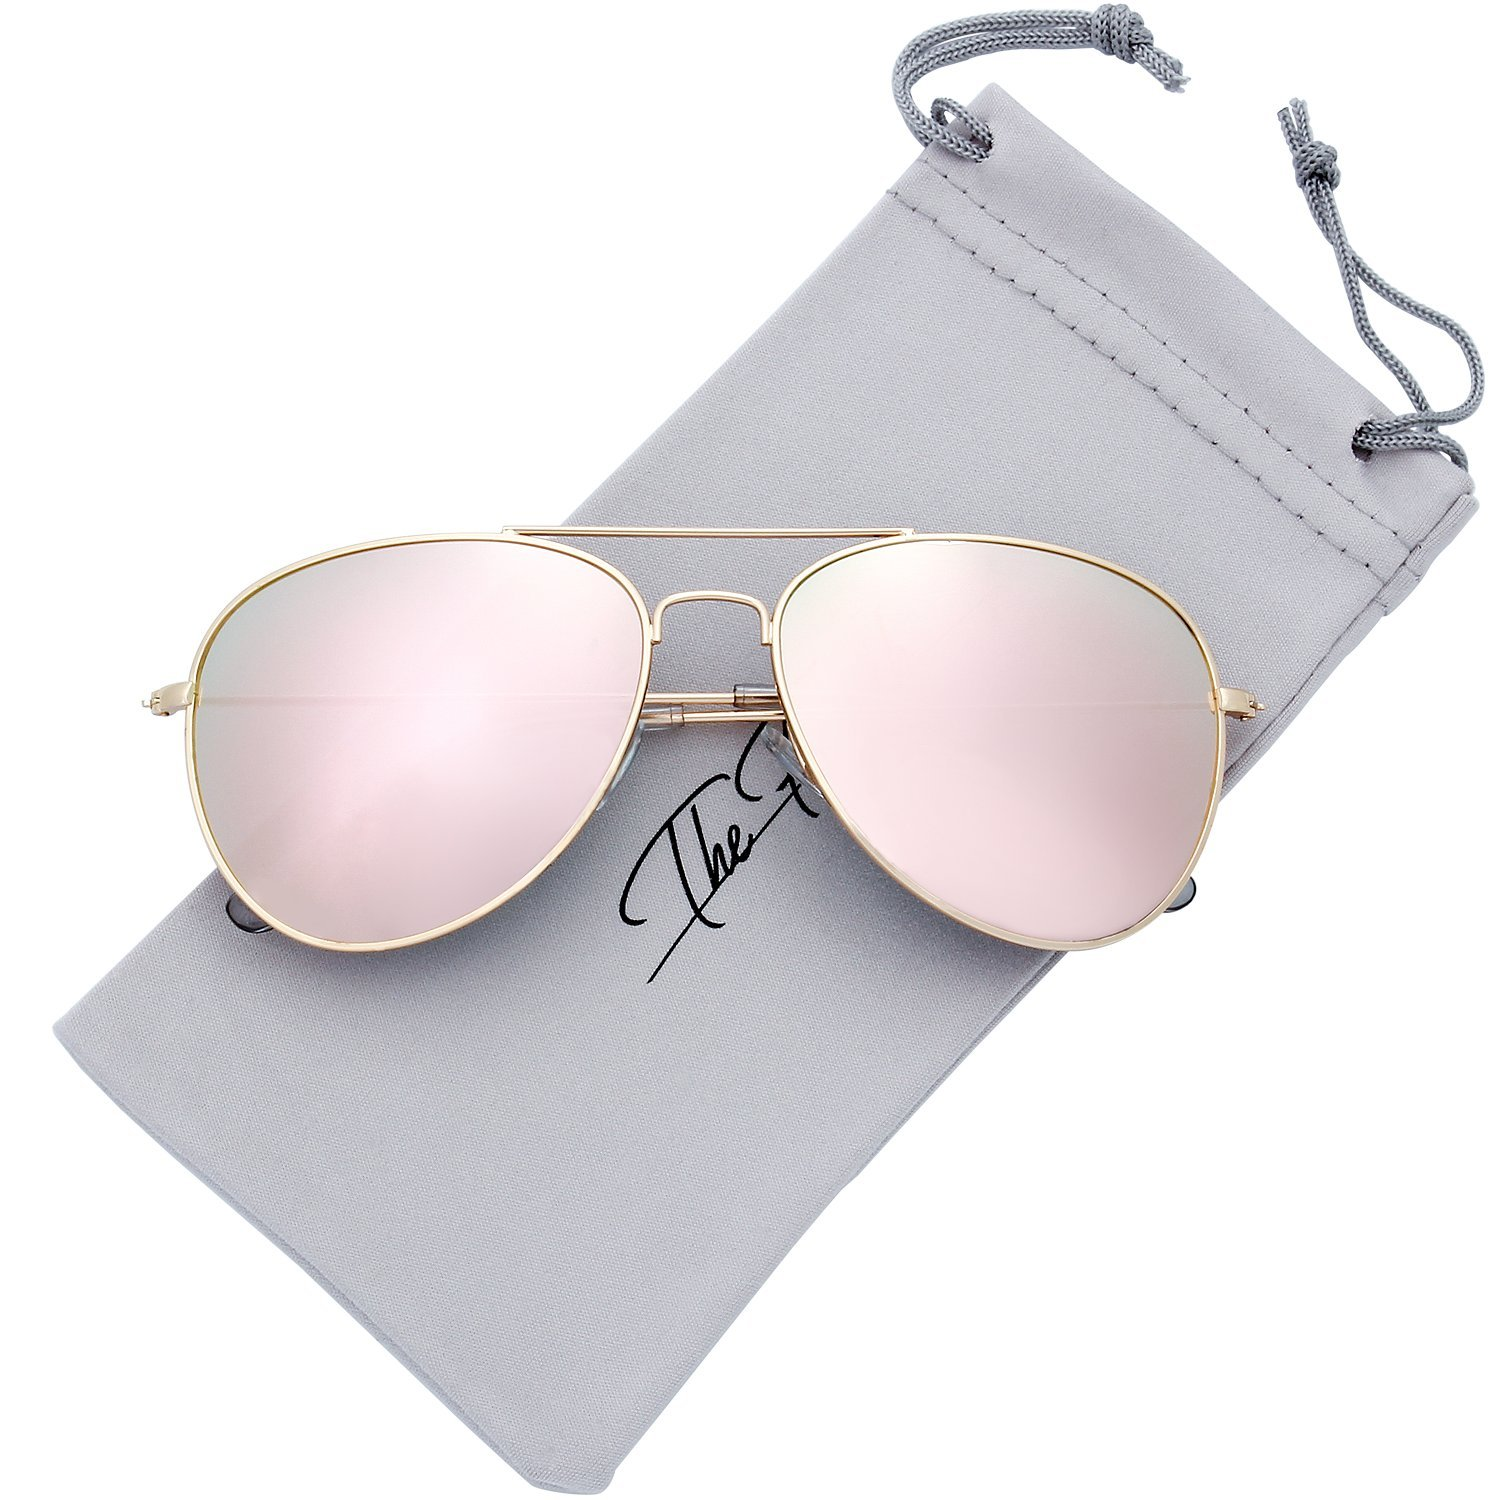 The Fresh Classic Large Metal Frame Mirror Lens Aviator Sunglasses with Gift Box (GOLD, PINK)